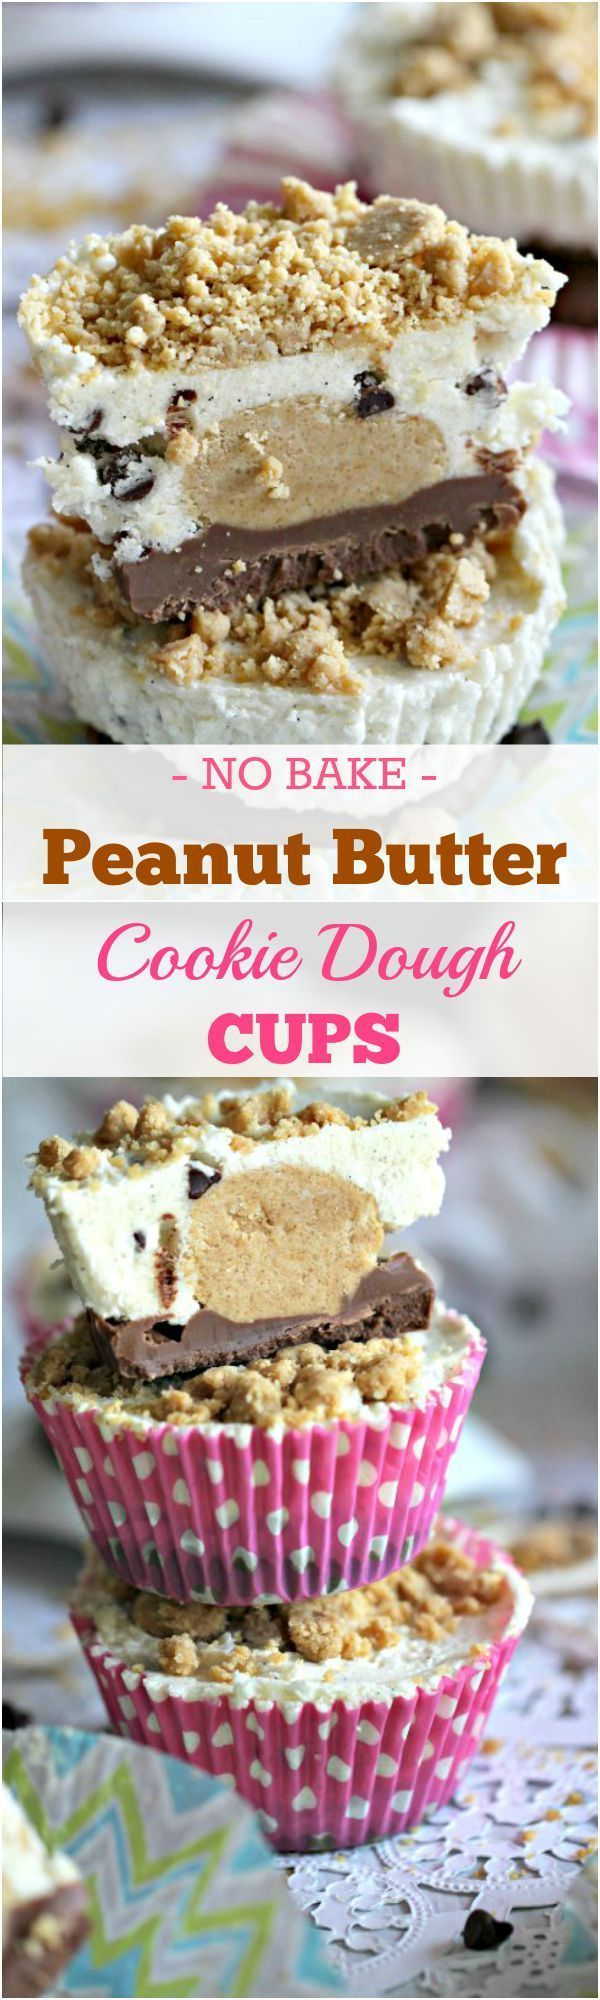 No Bake Peanut Butter Cookie Dough Cups - Peas and Peonies